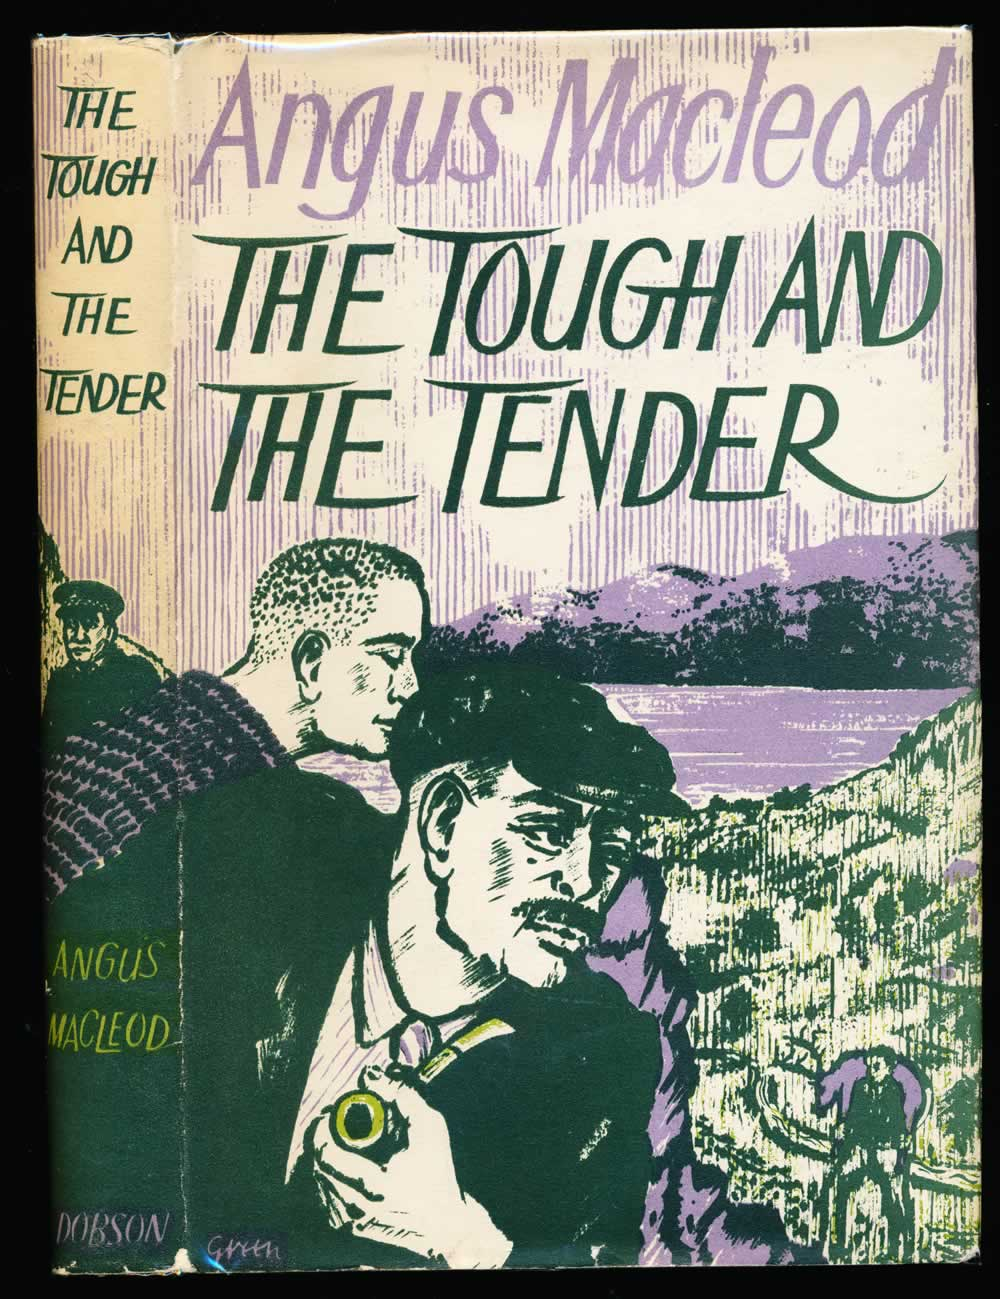 The tough and the tender